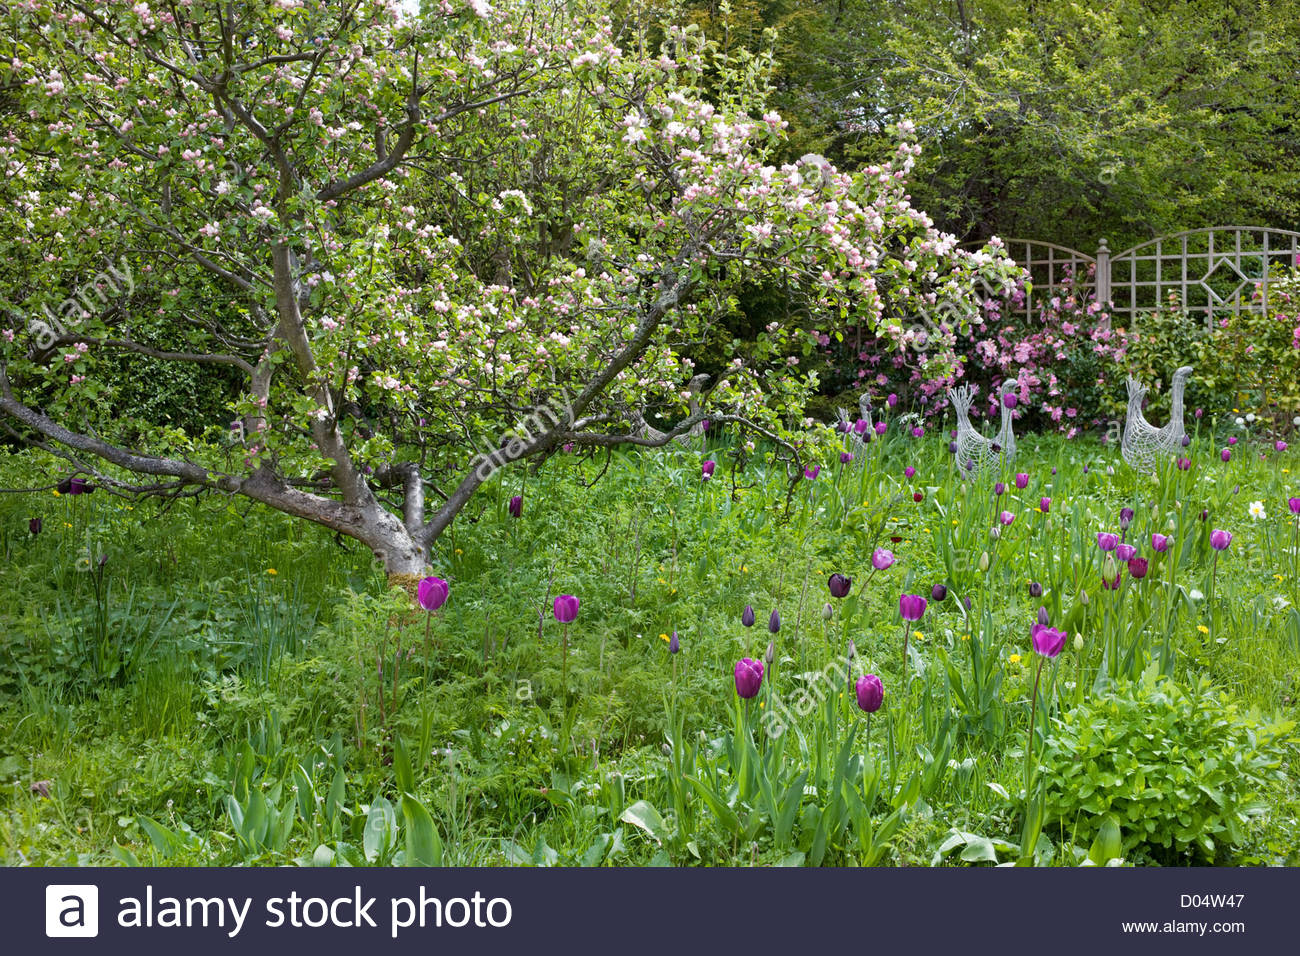 Elegant Orchard Garden With Apple Trees In Blossom And Flowering Bulbs.  U0027Roscullenu0027, Edinburgh, Scotland